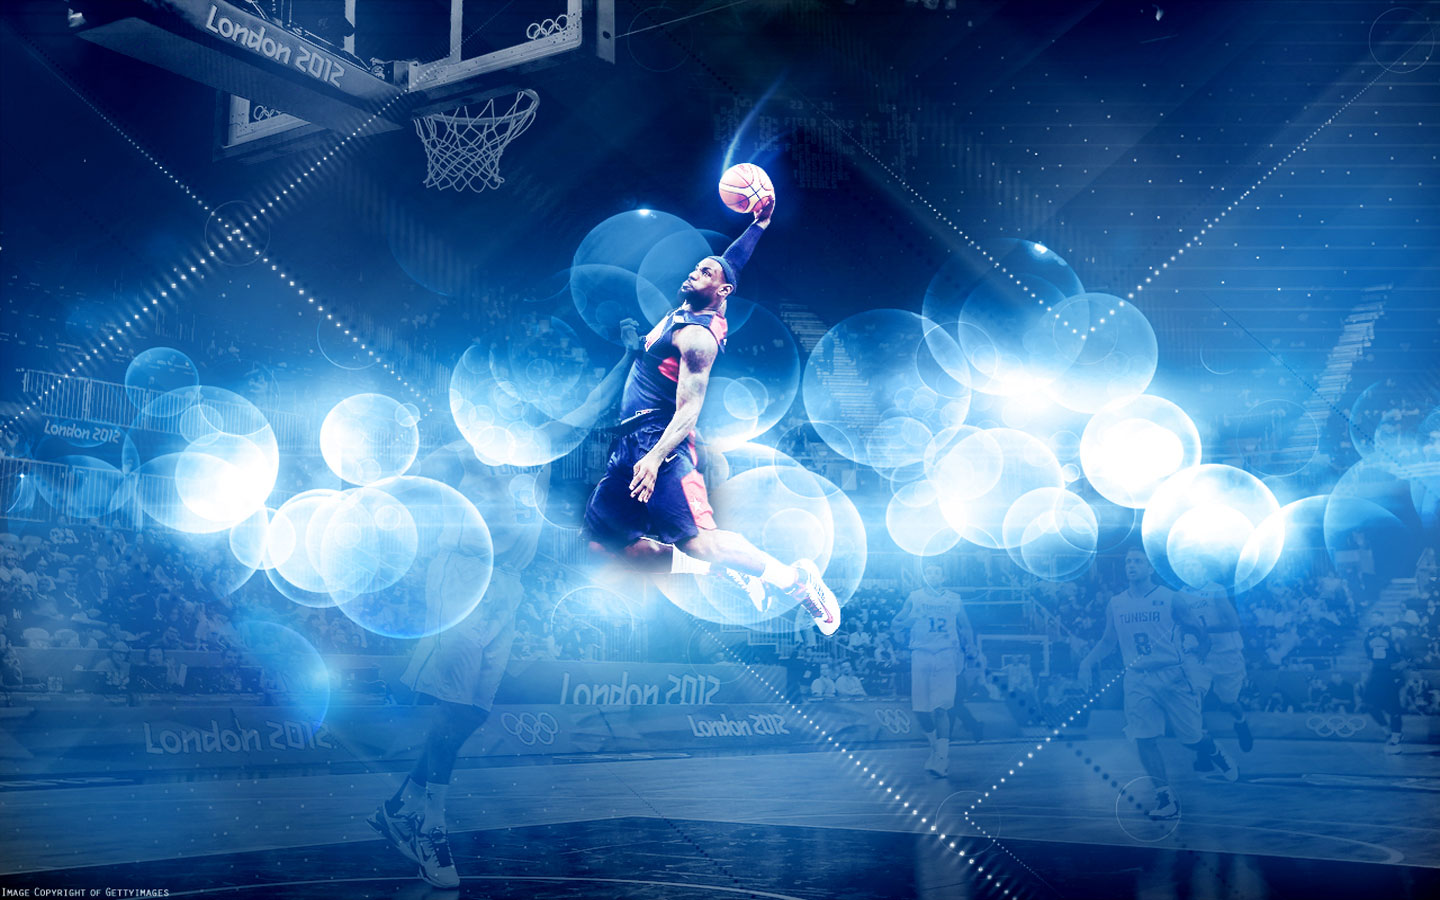 http://www.basketwallpapers.com/Images-11/LeBron-James-2012-Olympics-Dunk-vs-Tunisia-Wallpaper-BasketWallpapers.com-.jpg